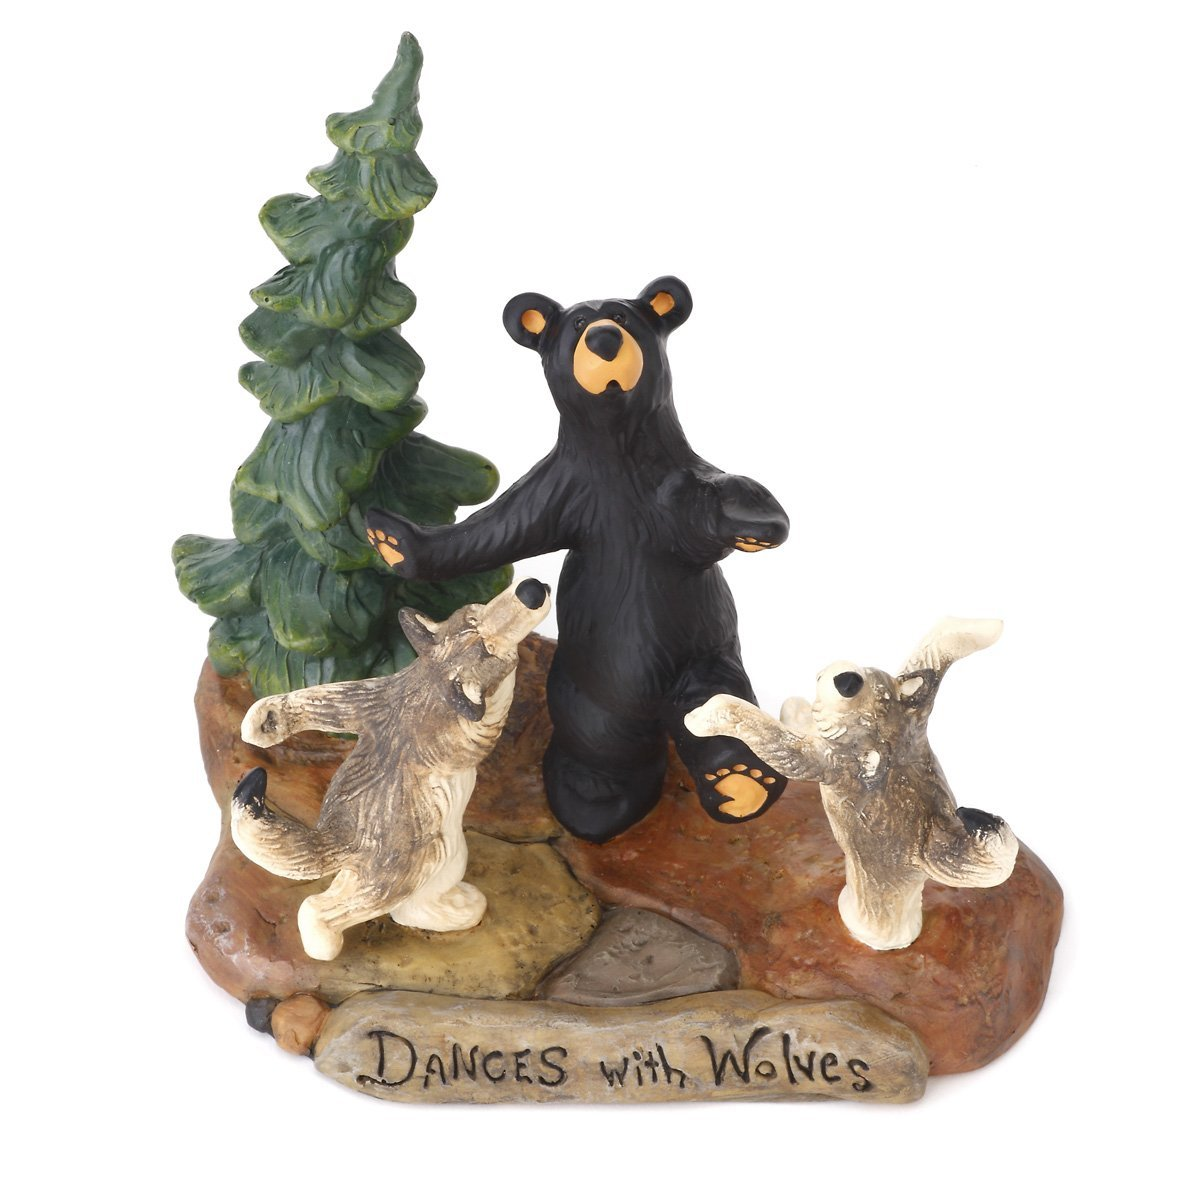 Carvers Dances with Wolves Figurine, From the Bearfoots Collection By Big Sky